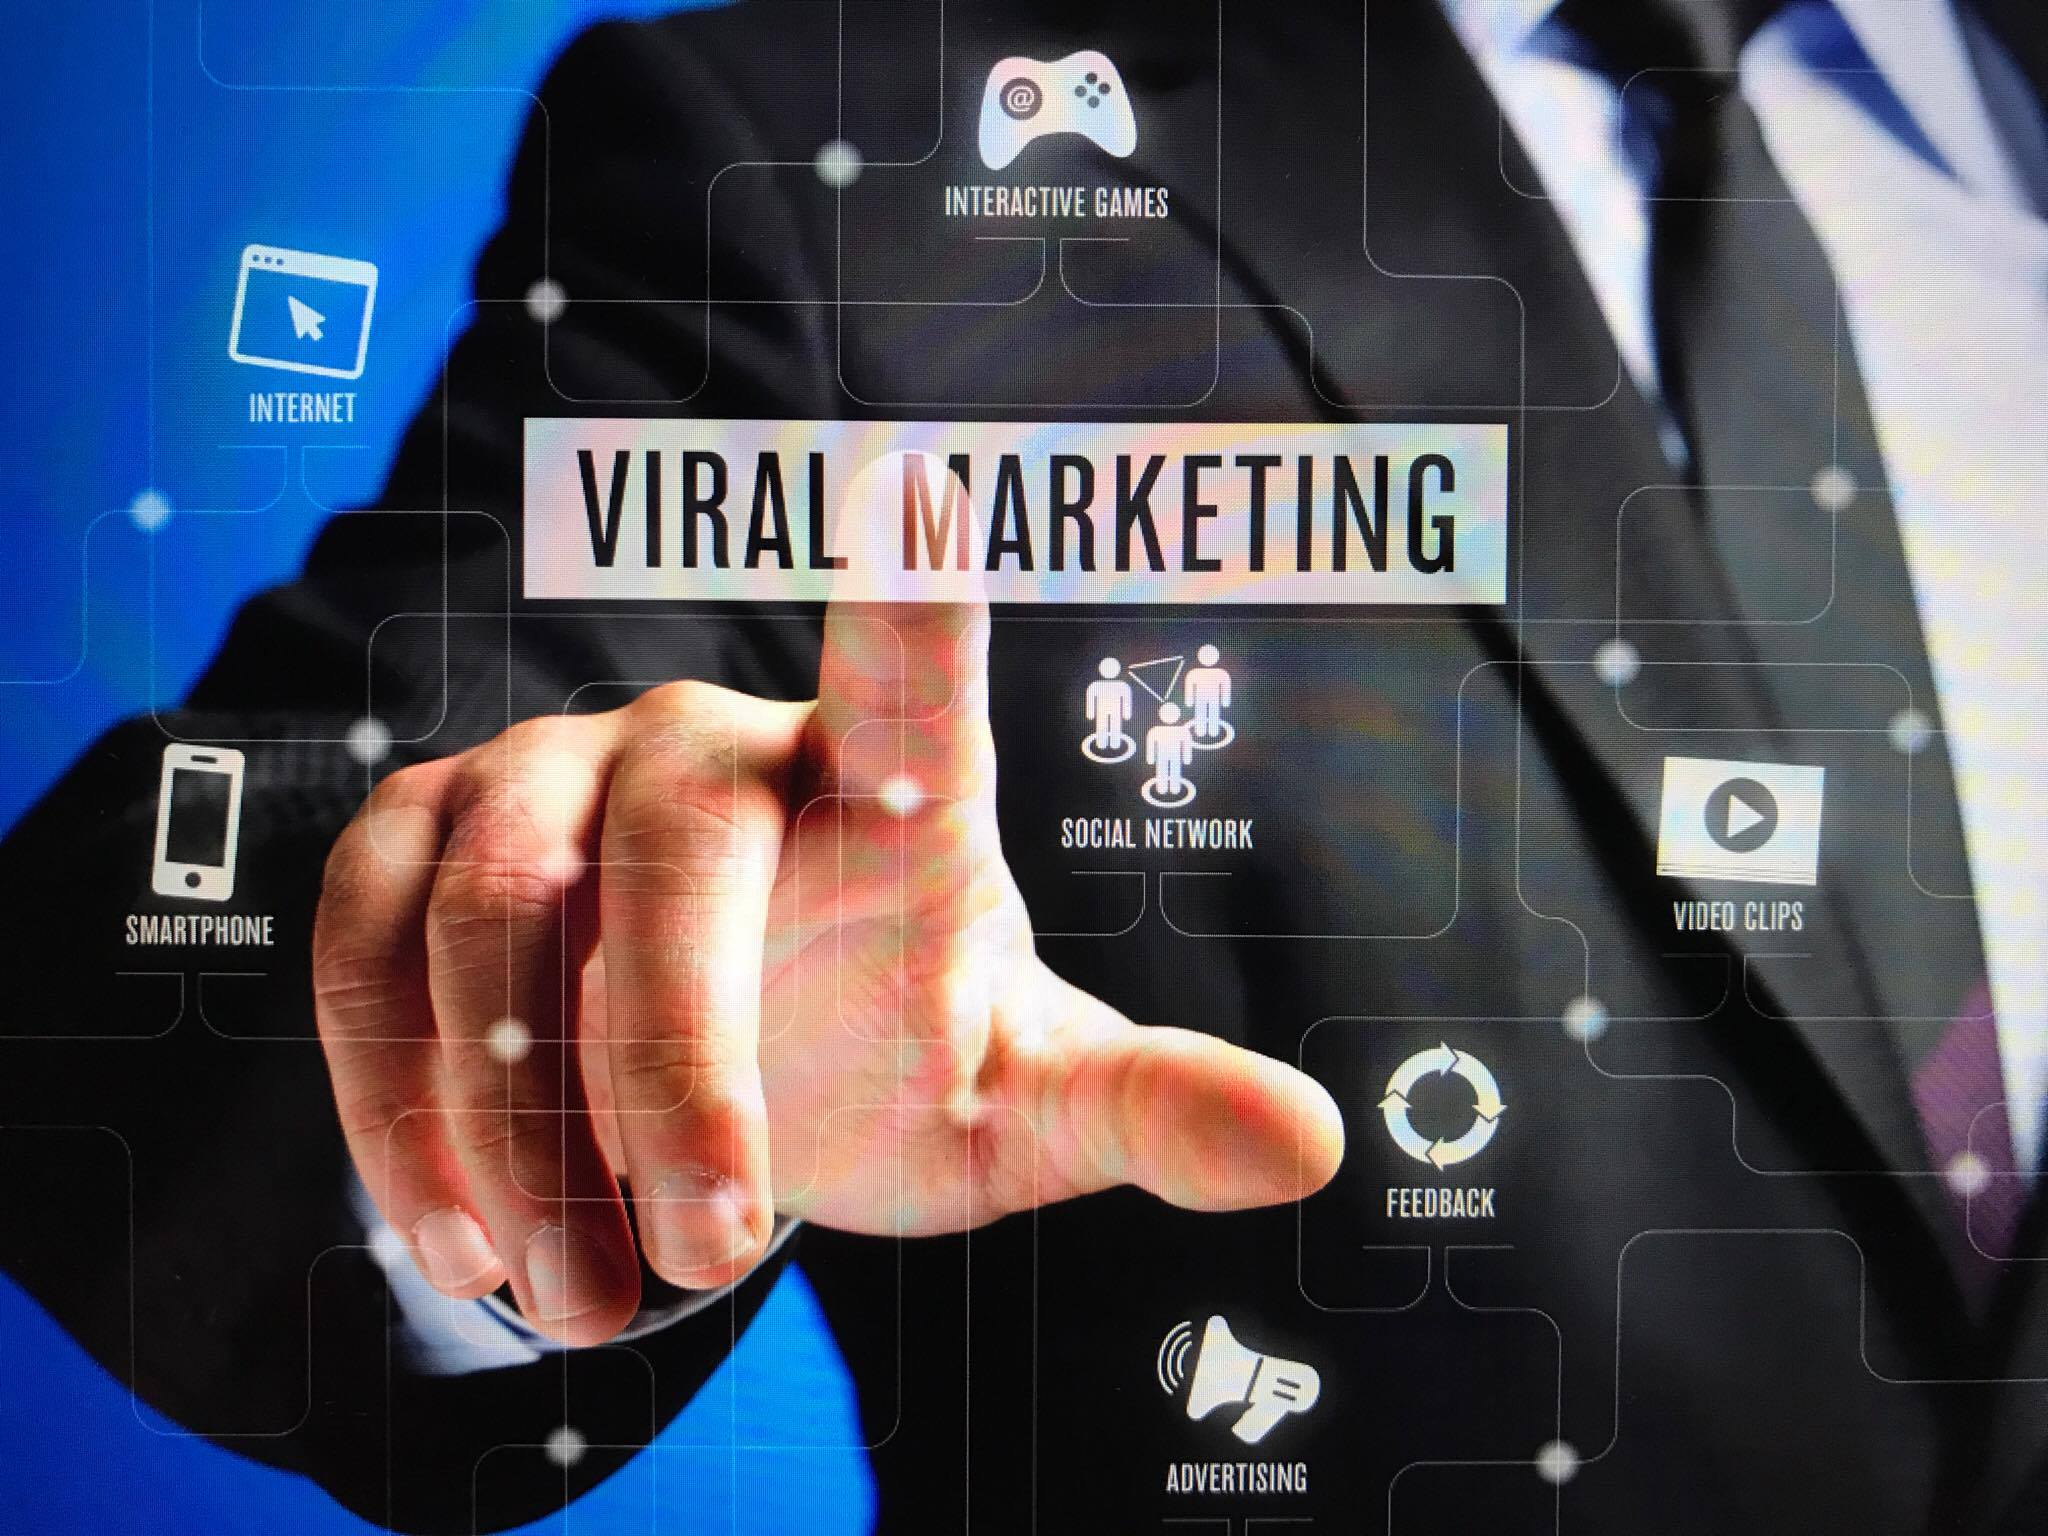 Social Media and Internet Marketing Advertising and Consulting Services For Companies and Small Business